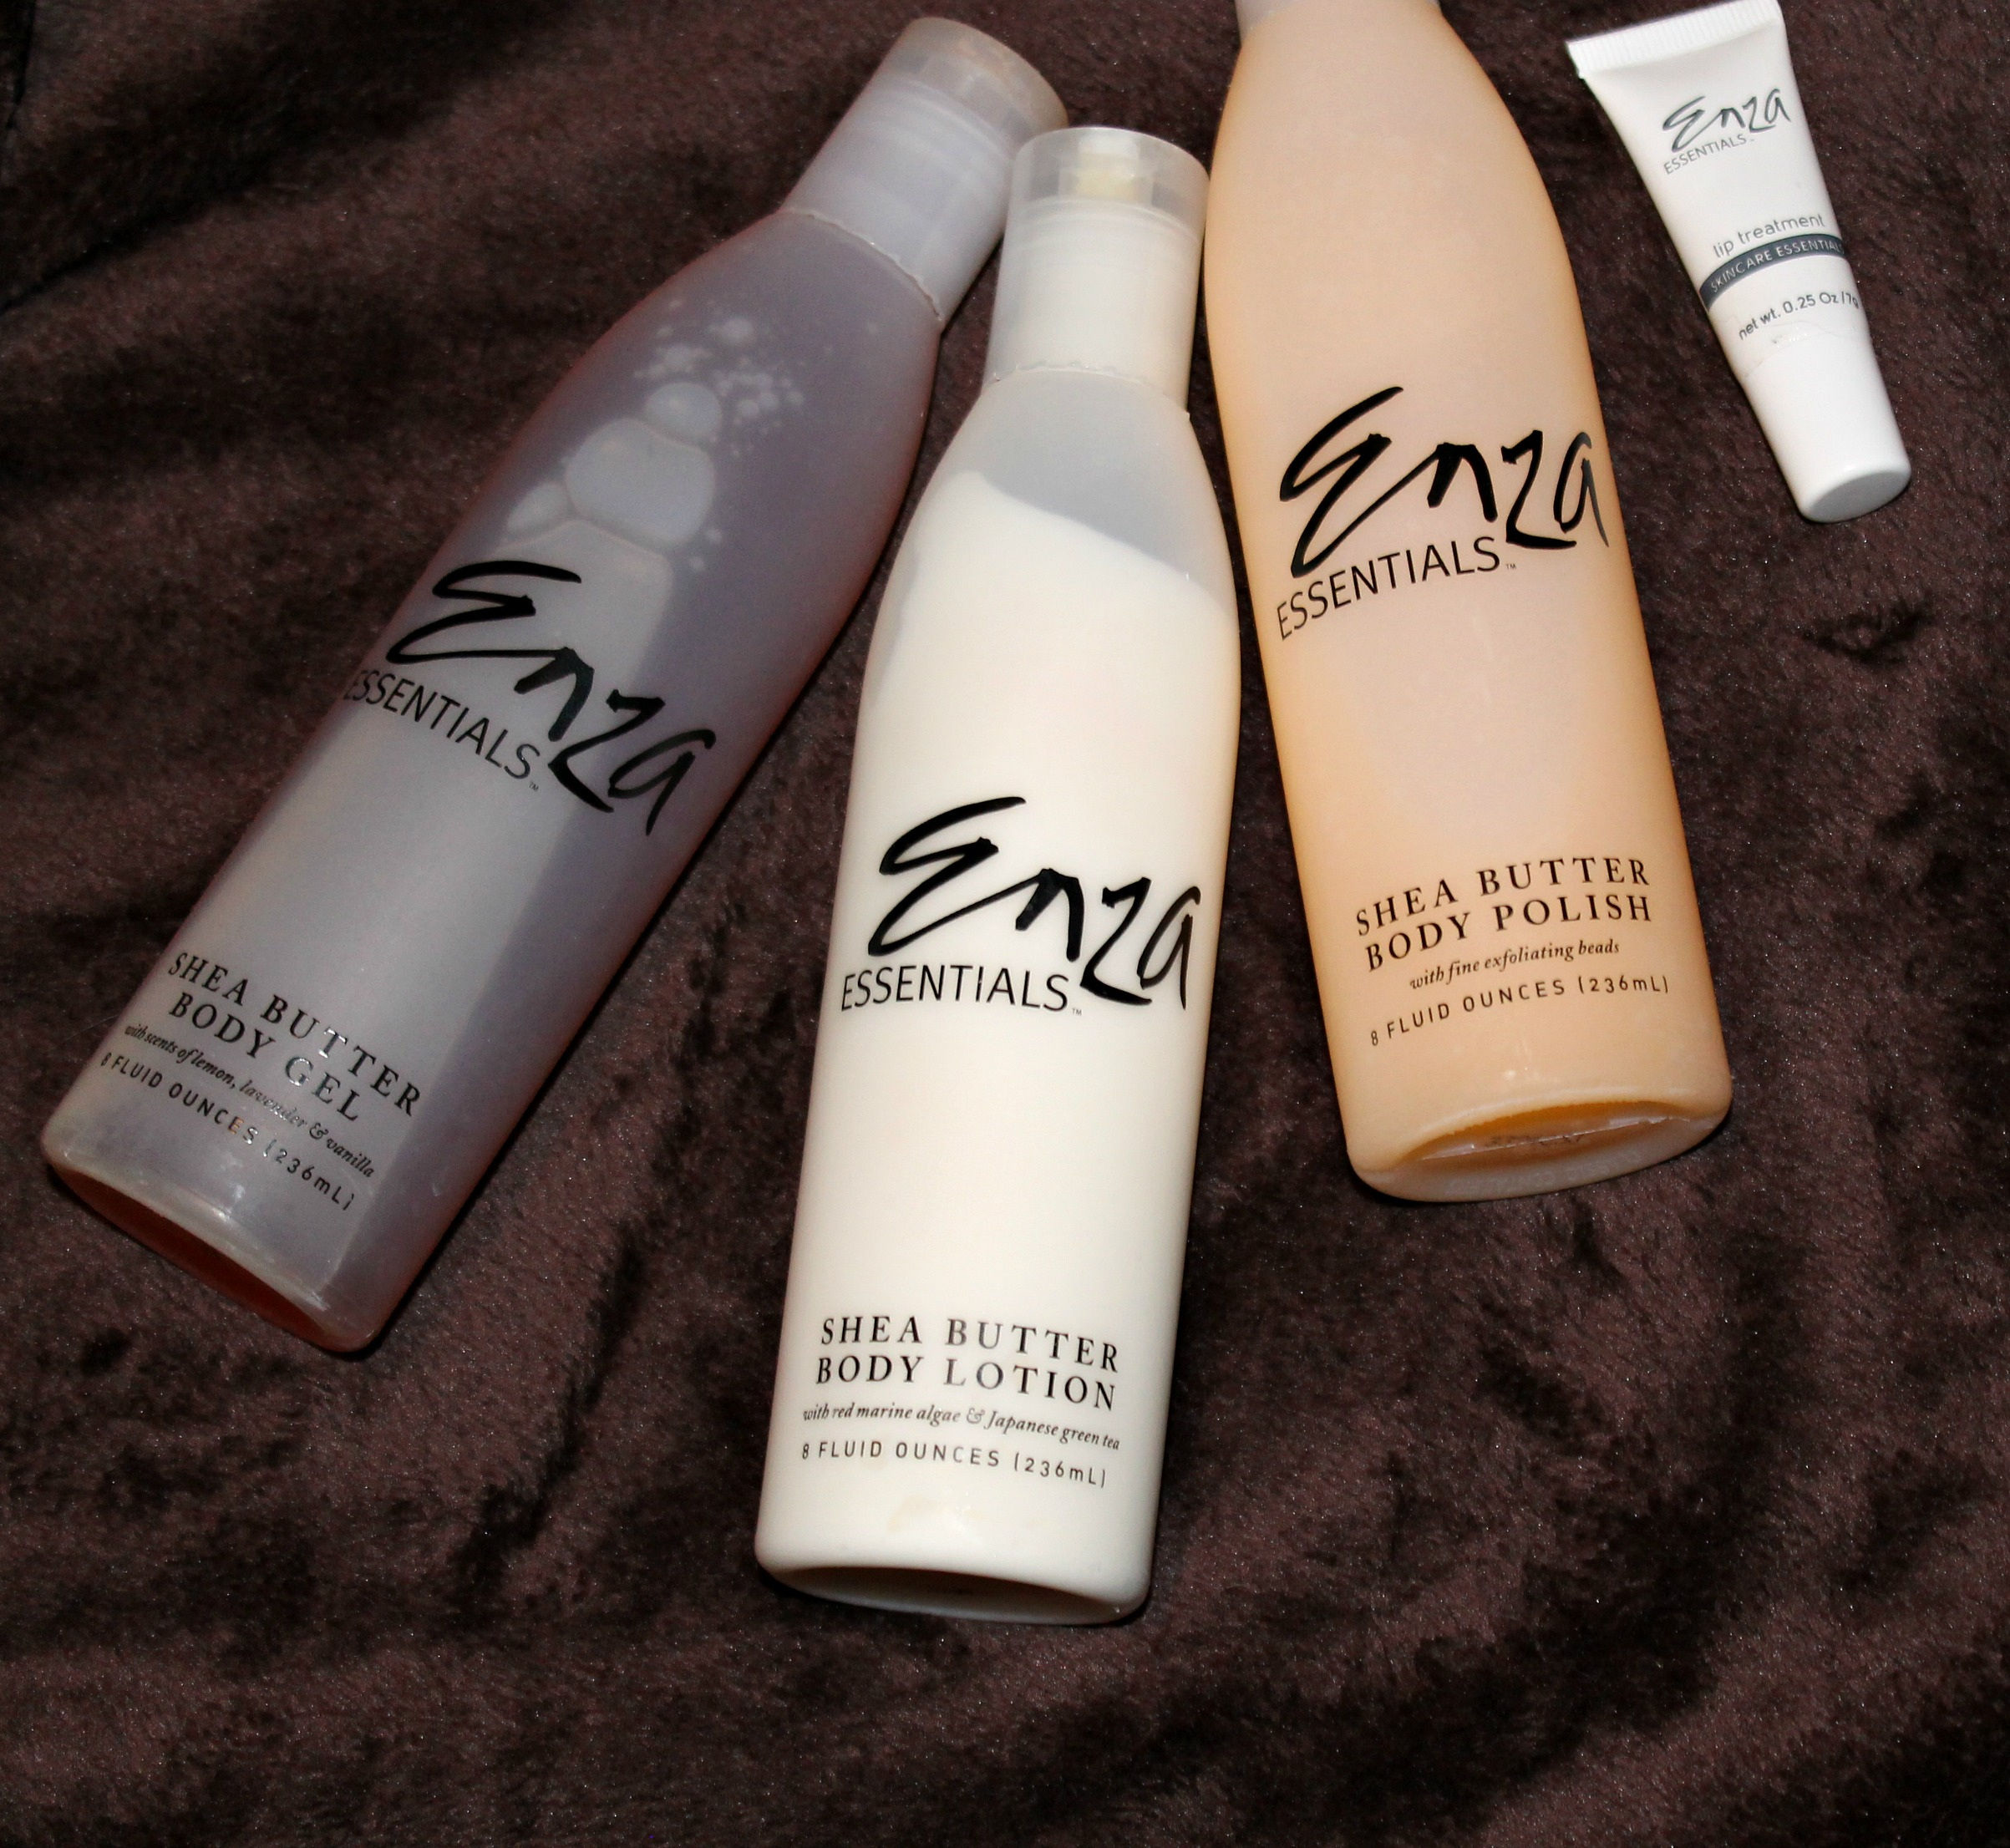 Enza Essentials - Body Butter Lotion, Gel, Body Polish and Lip Treatment